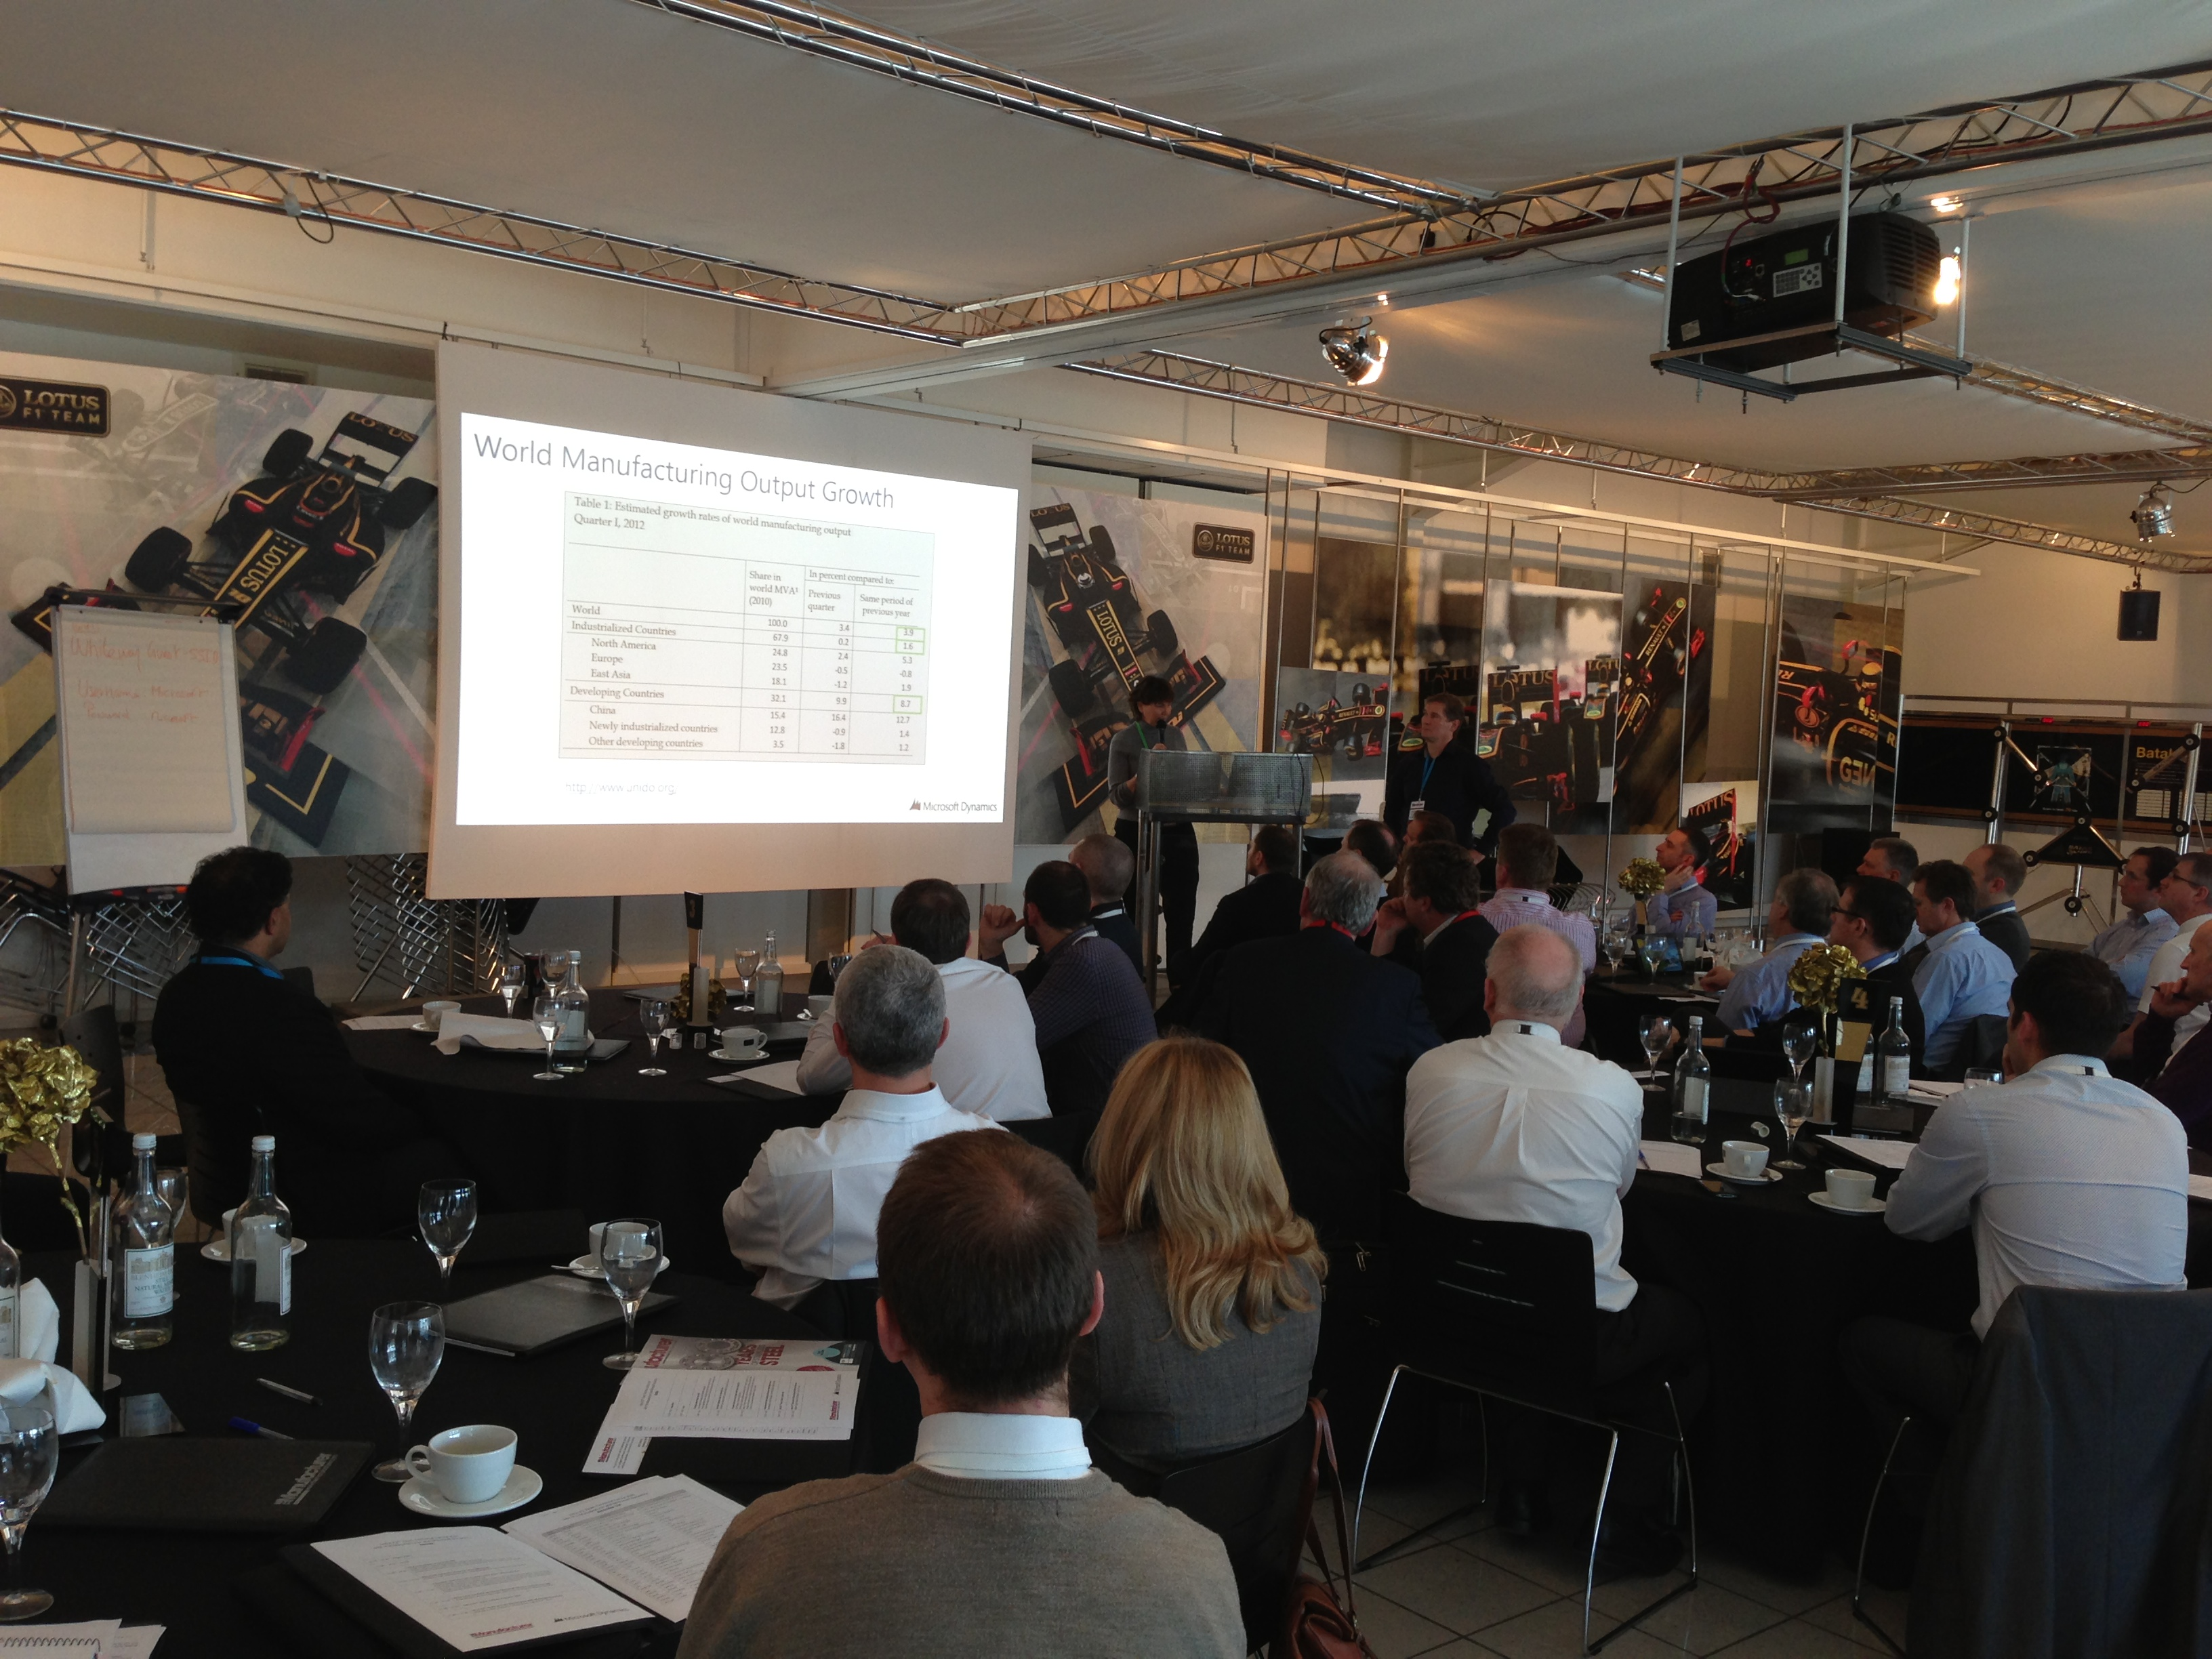 Melissa Cook, global industry lead manufacturing for Microsoft Dynamics, during her presentation at the Lotus F1 Team Communications and Heritage Centre